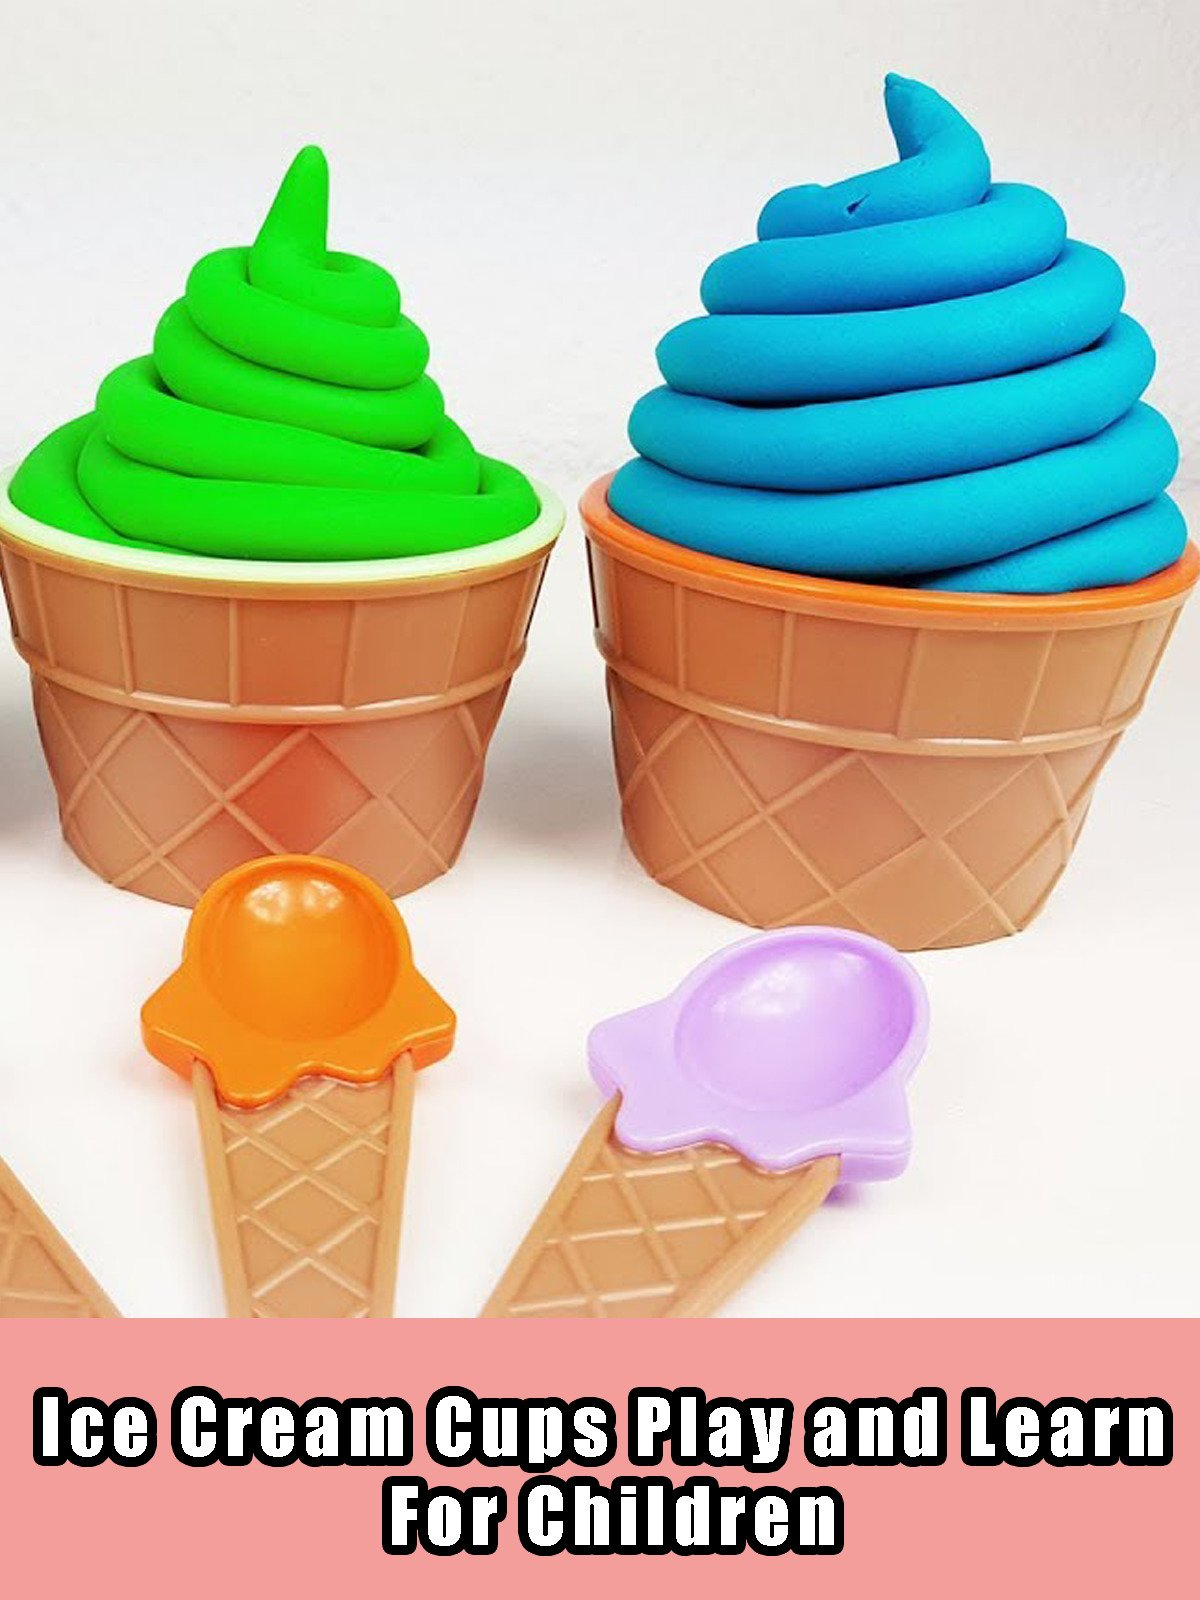 Ice Cream Cups Play and Learn For Children